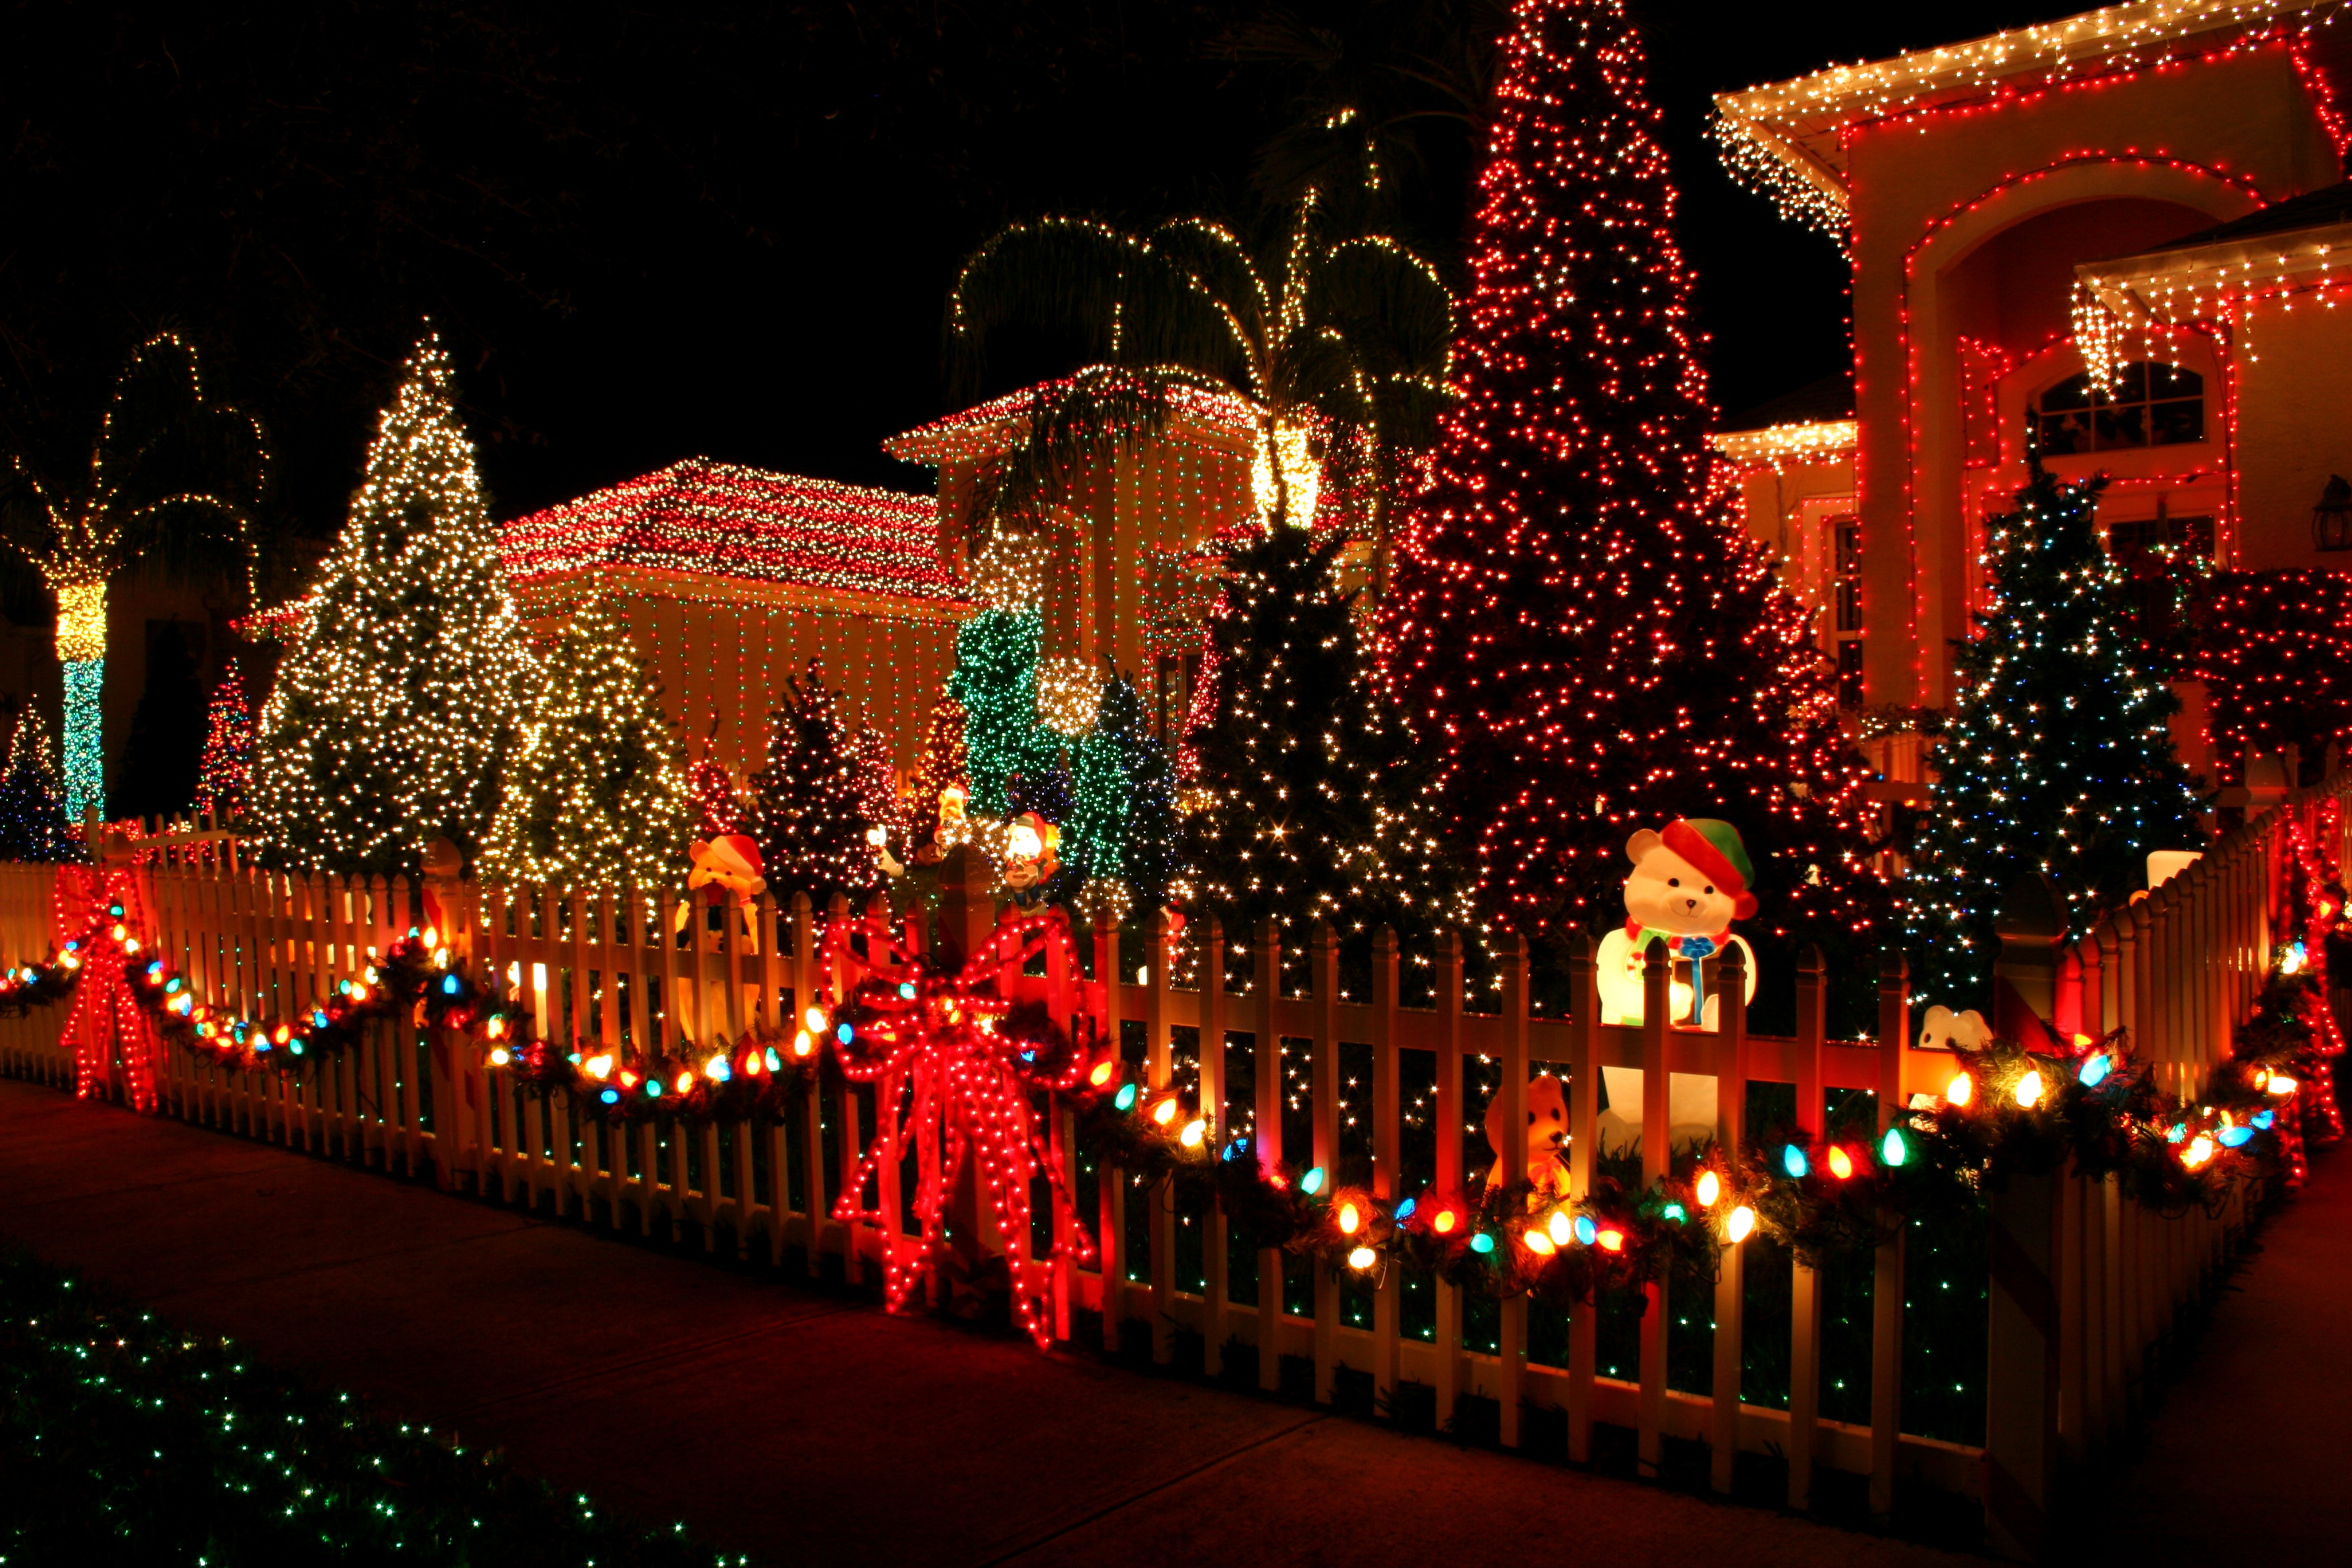 we may not see glittering snowflakes or icicles here in phoenix but we sure do know how to make spirits bright the valley is home to a plethora of - Where To Go See Christmas Lights